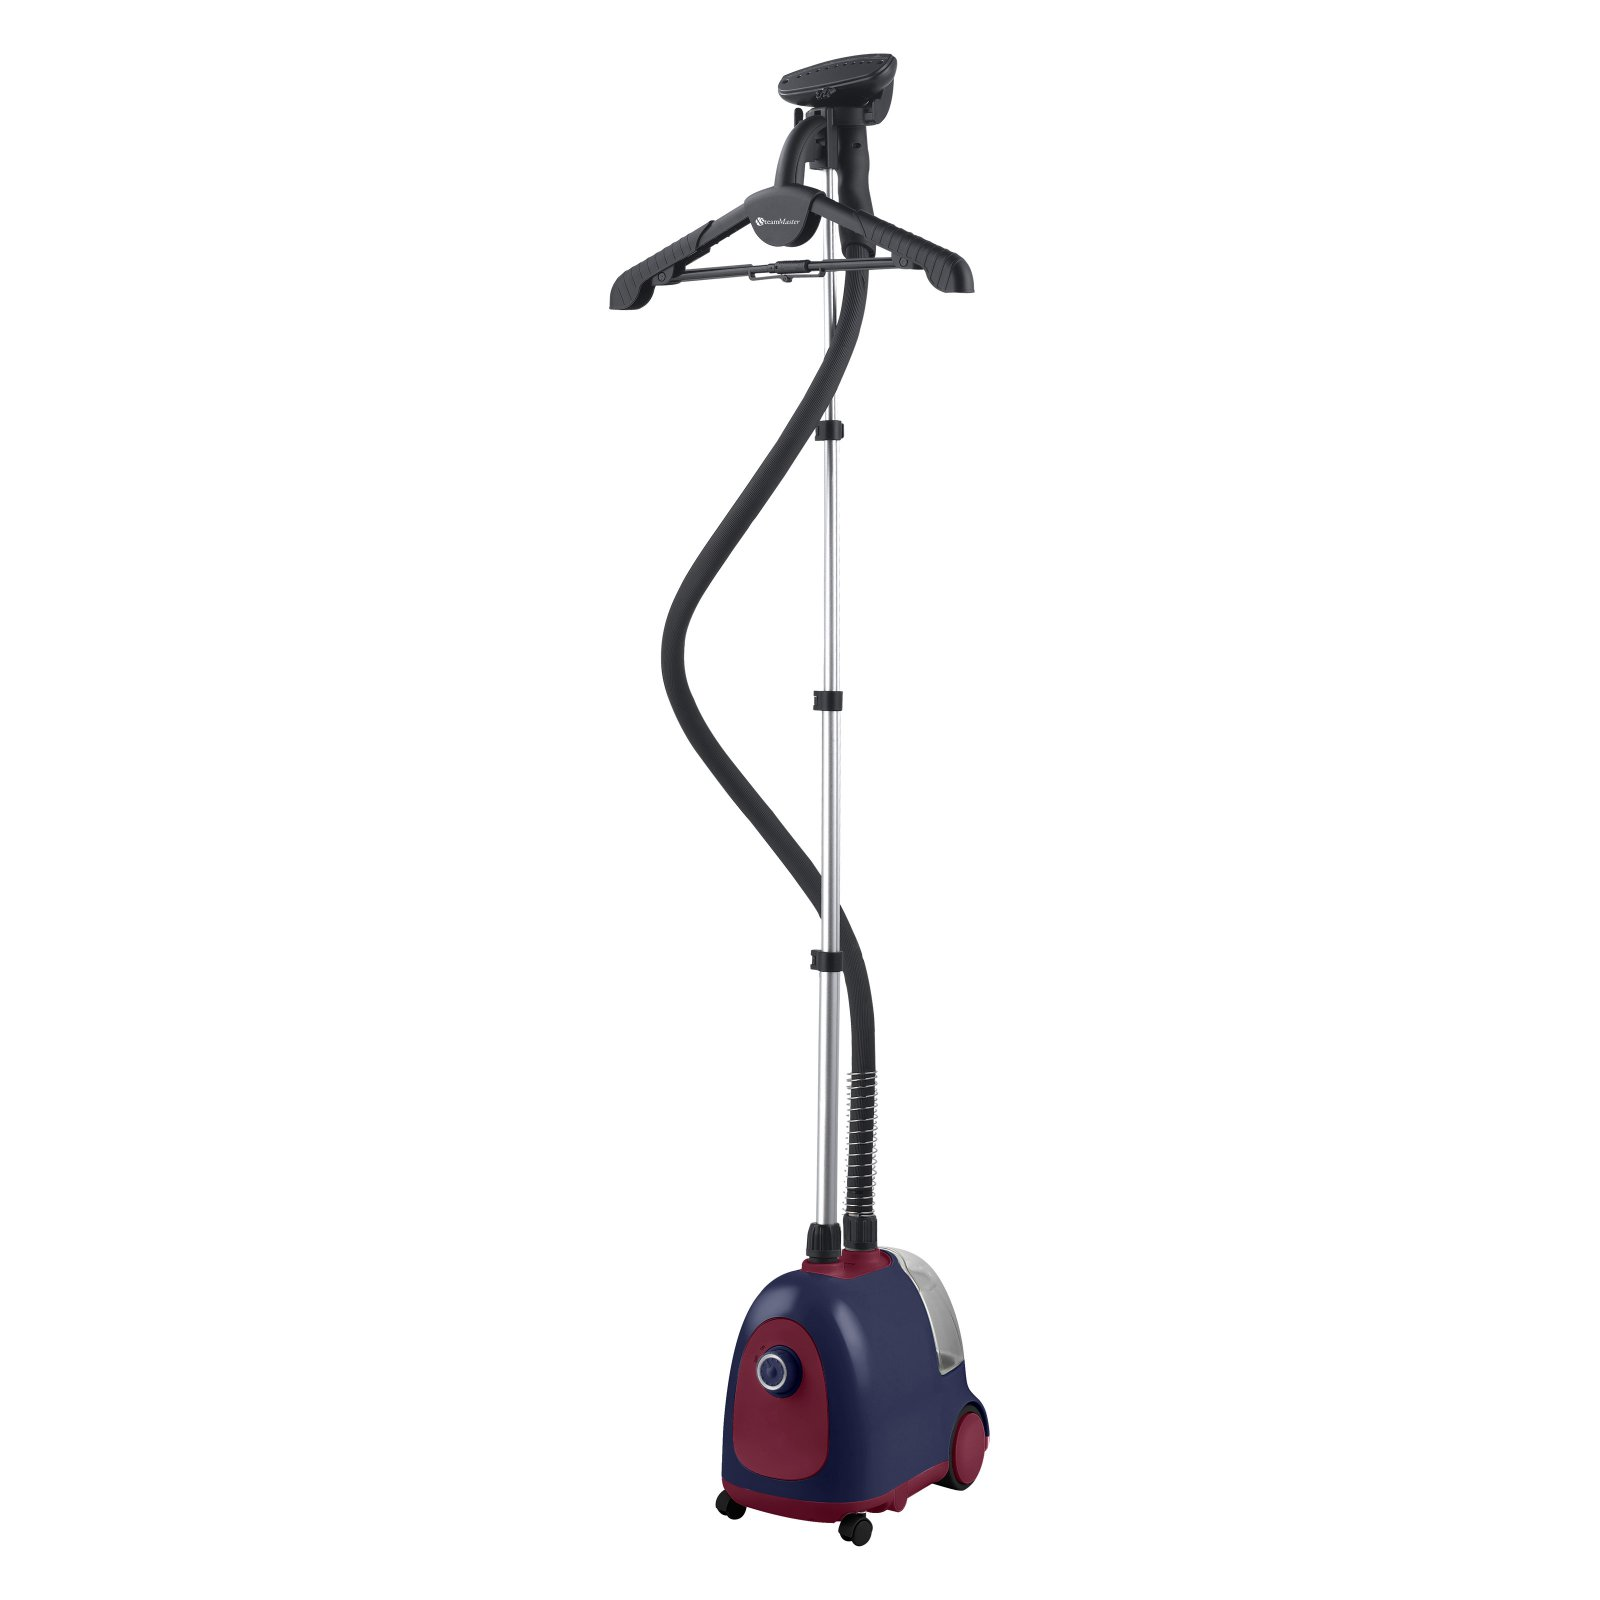 Steam and Go SAG-12 Professional Garment Steamer